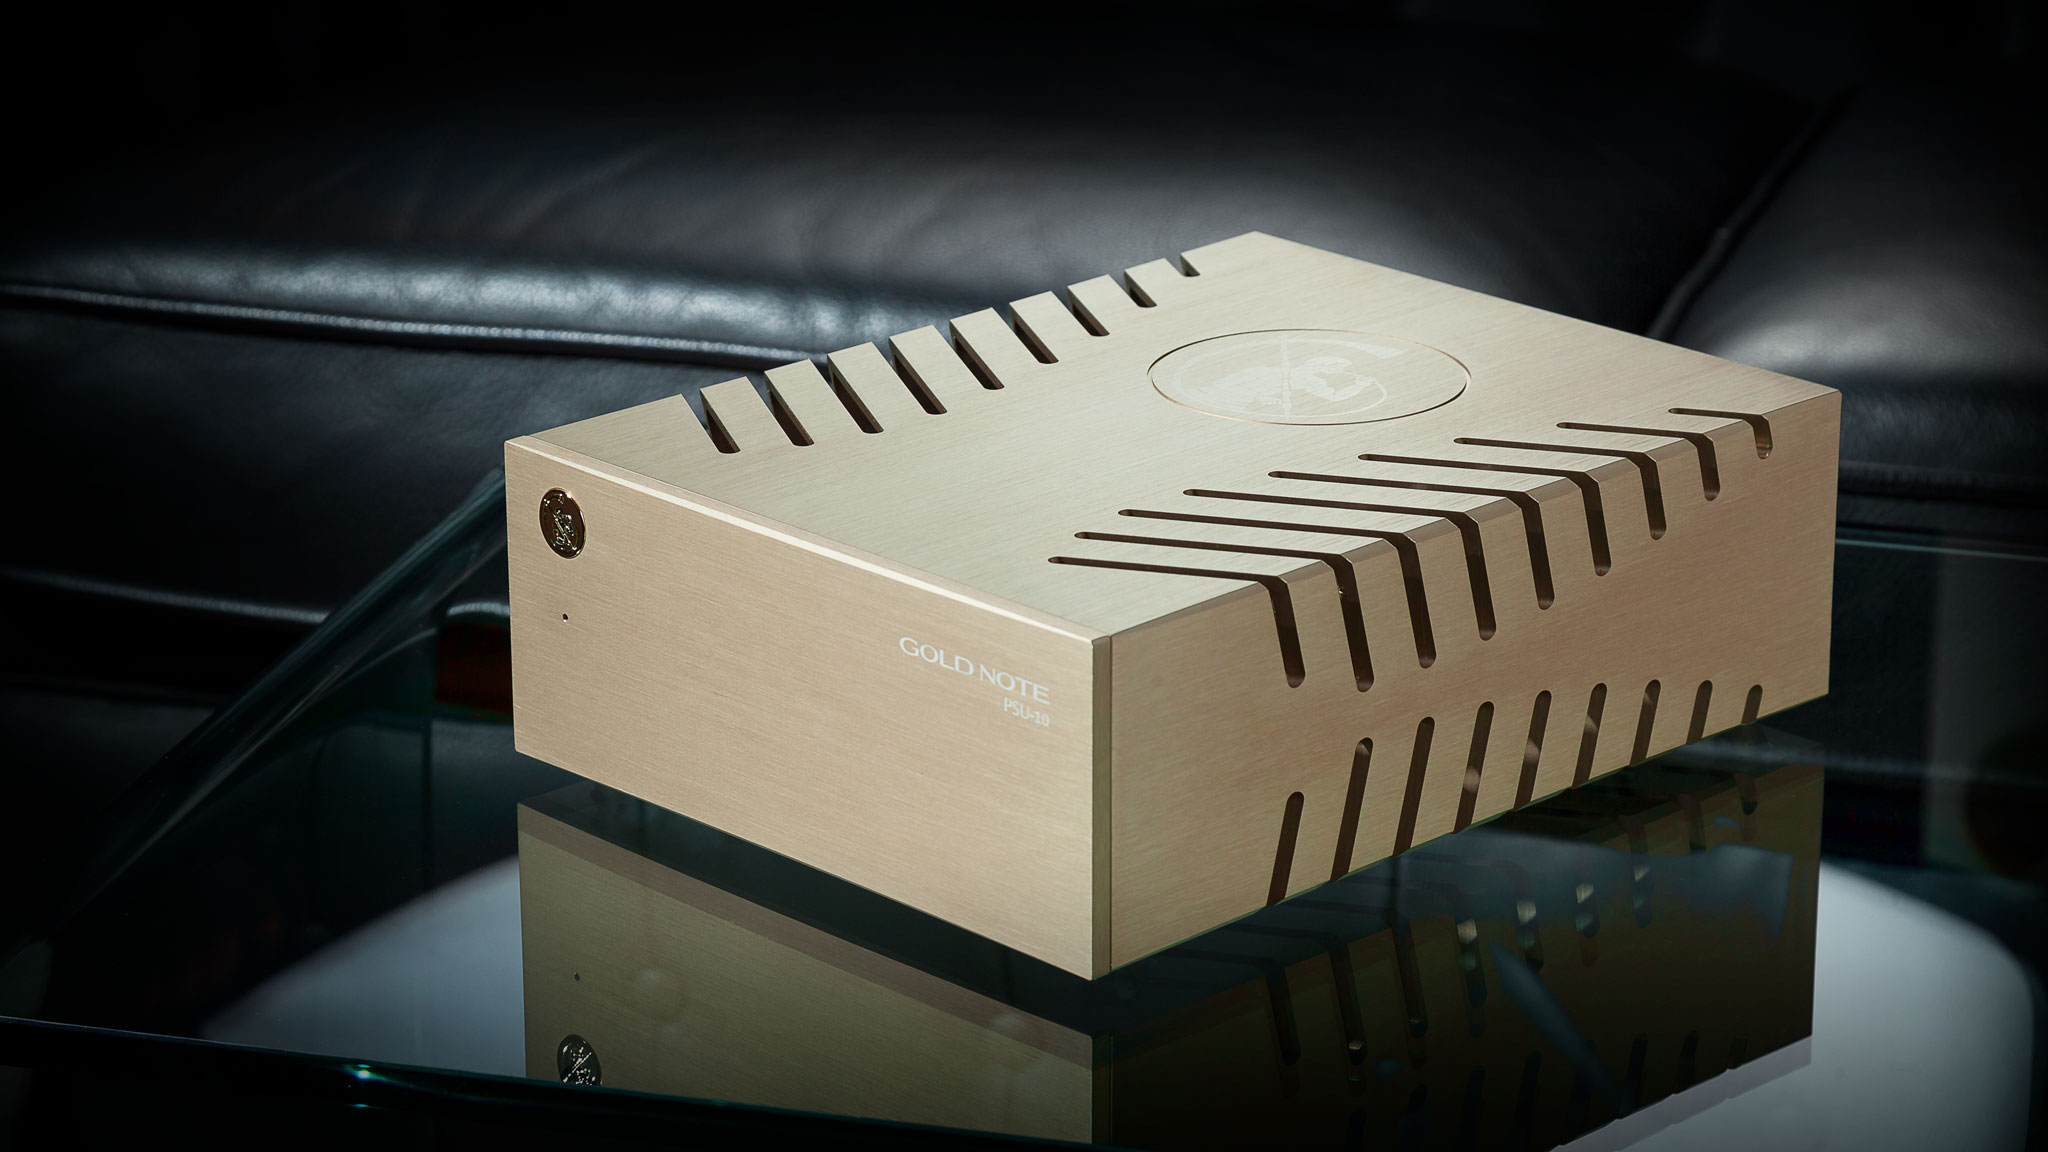 PSU-10 in Gold